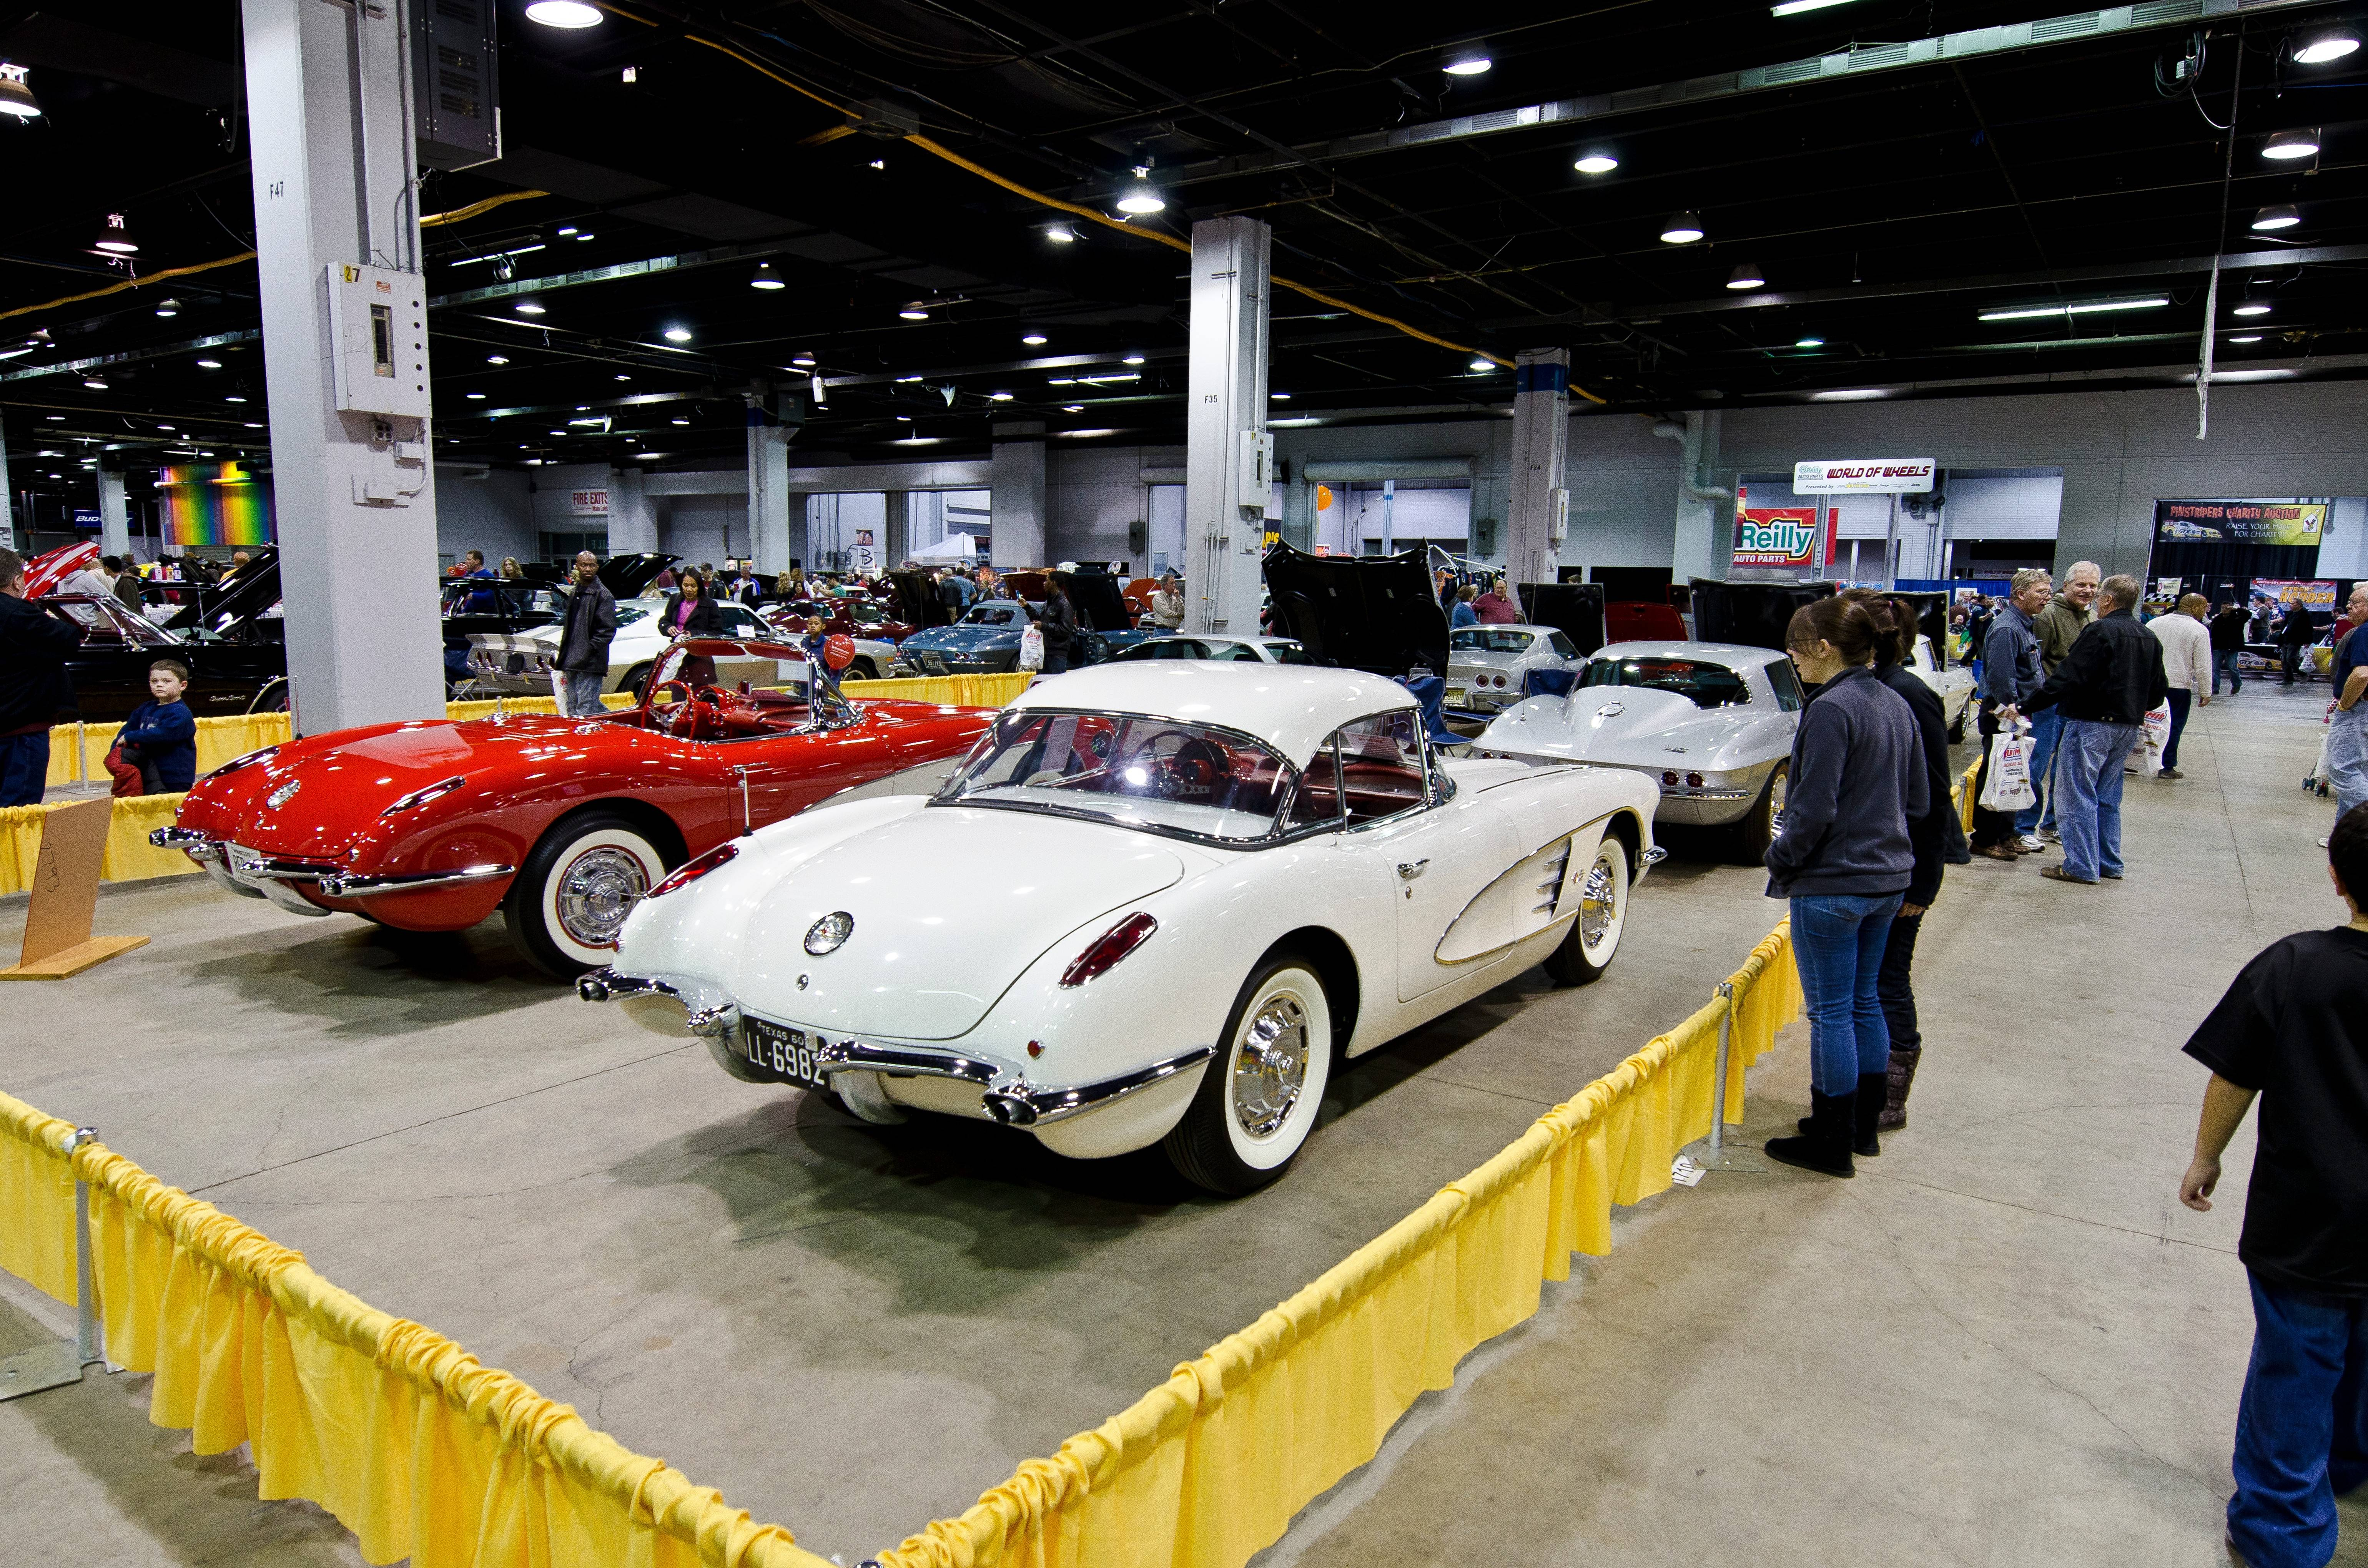 These Chevy Corvettes and numerous other treasured autos were on display at a previous World of Wheels car show in Rosemont.